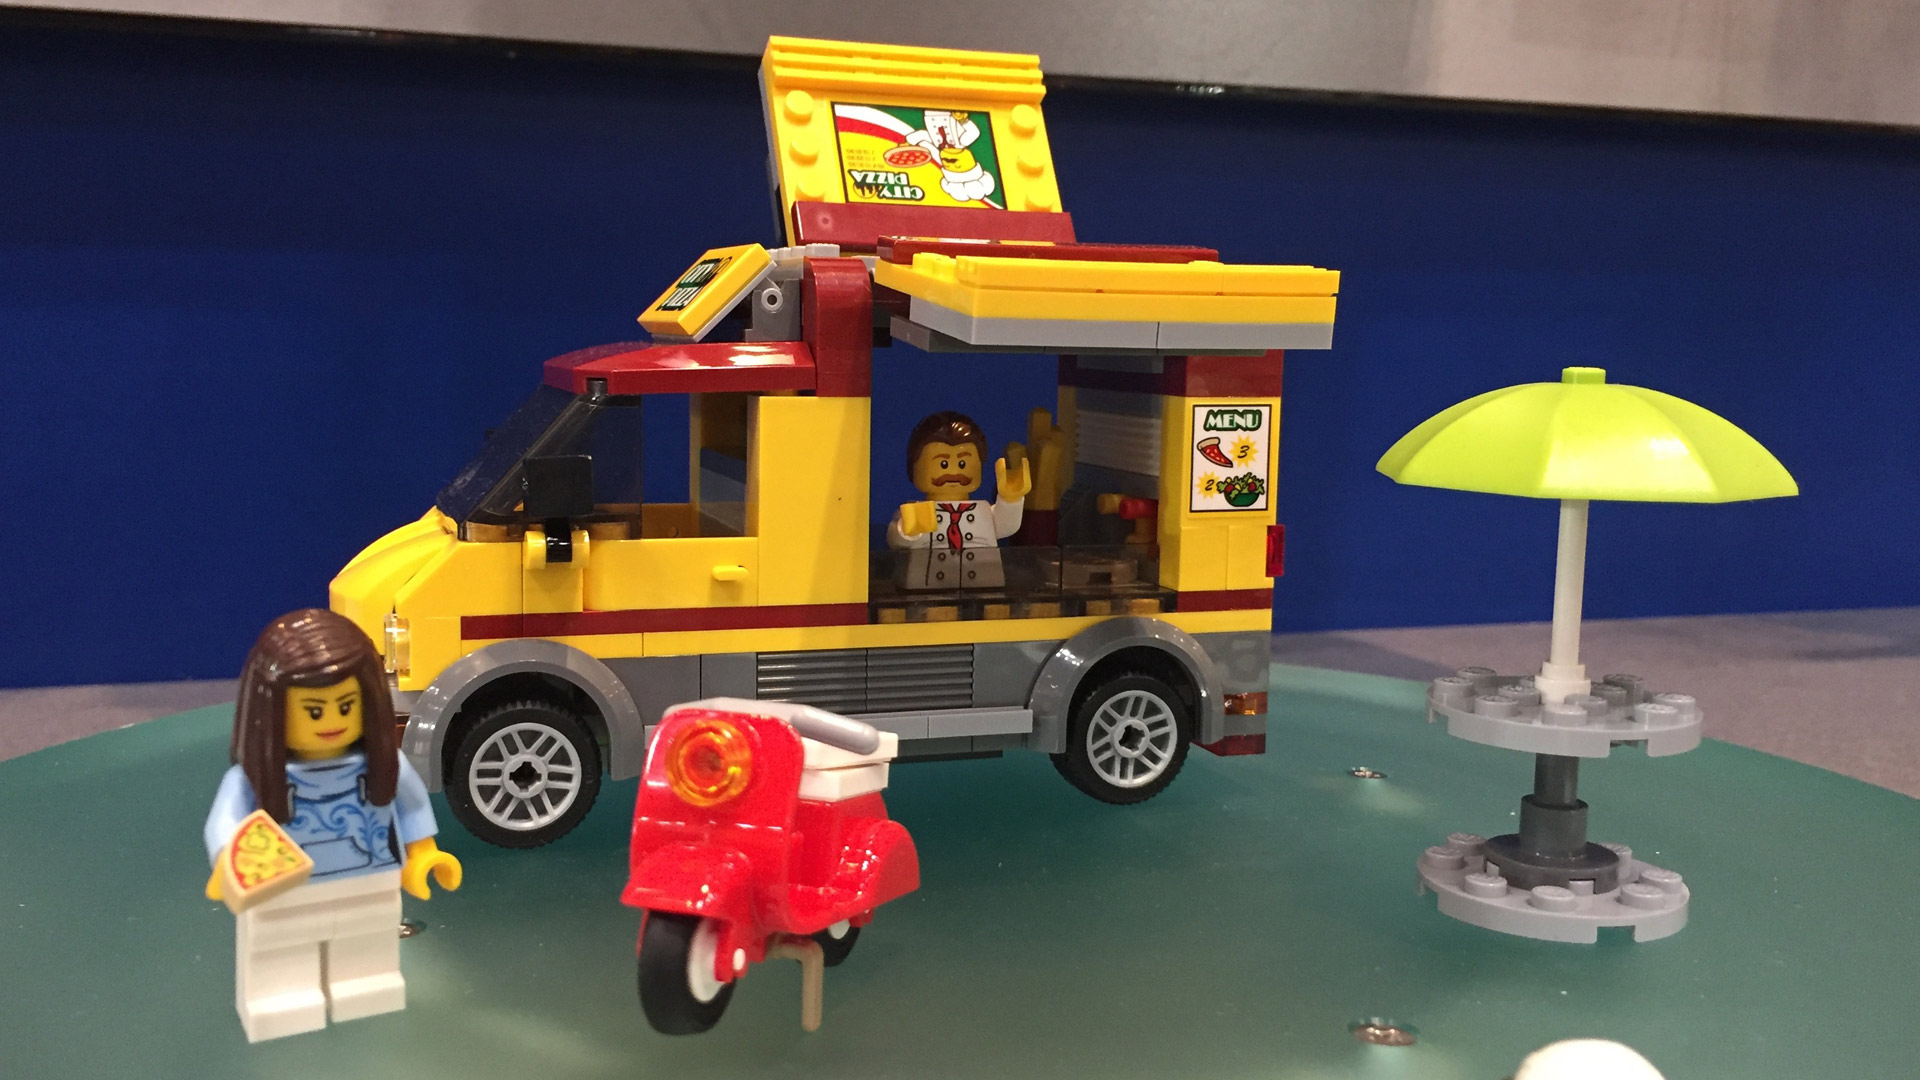 LEGO City Set 60150 Pizza Van at Toy Fair 2017